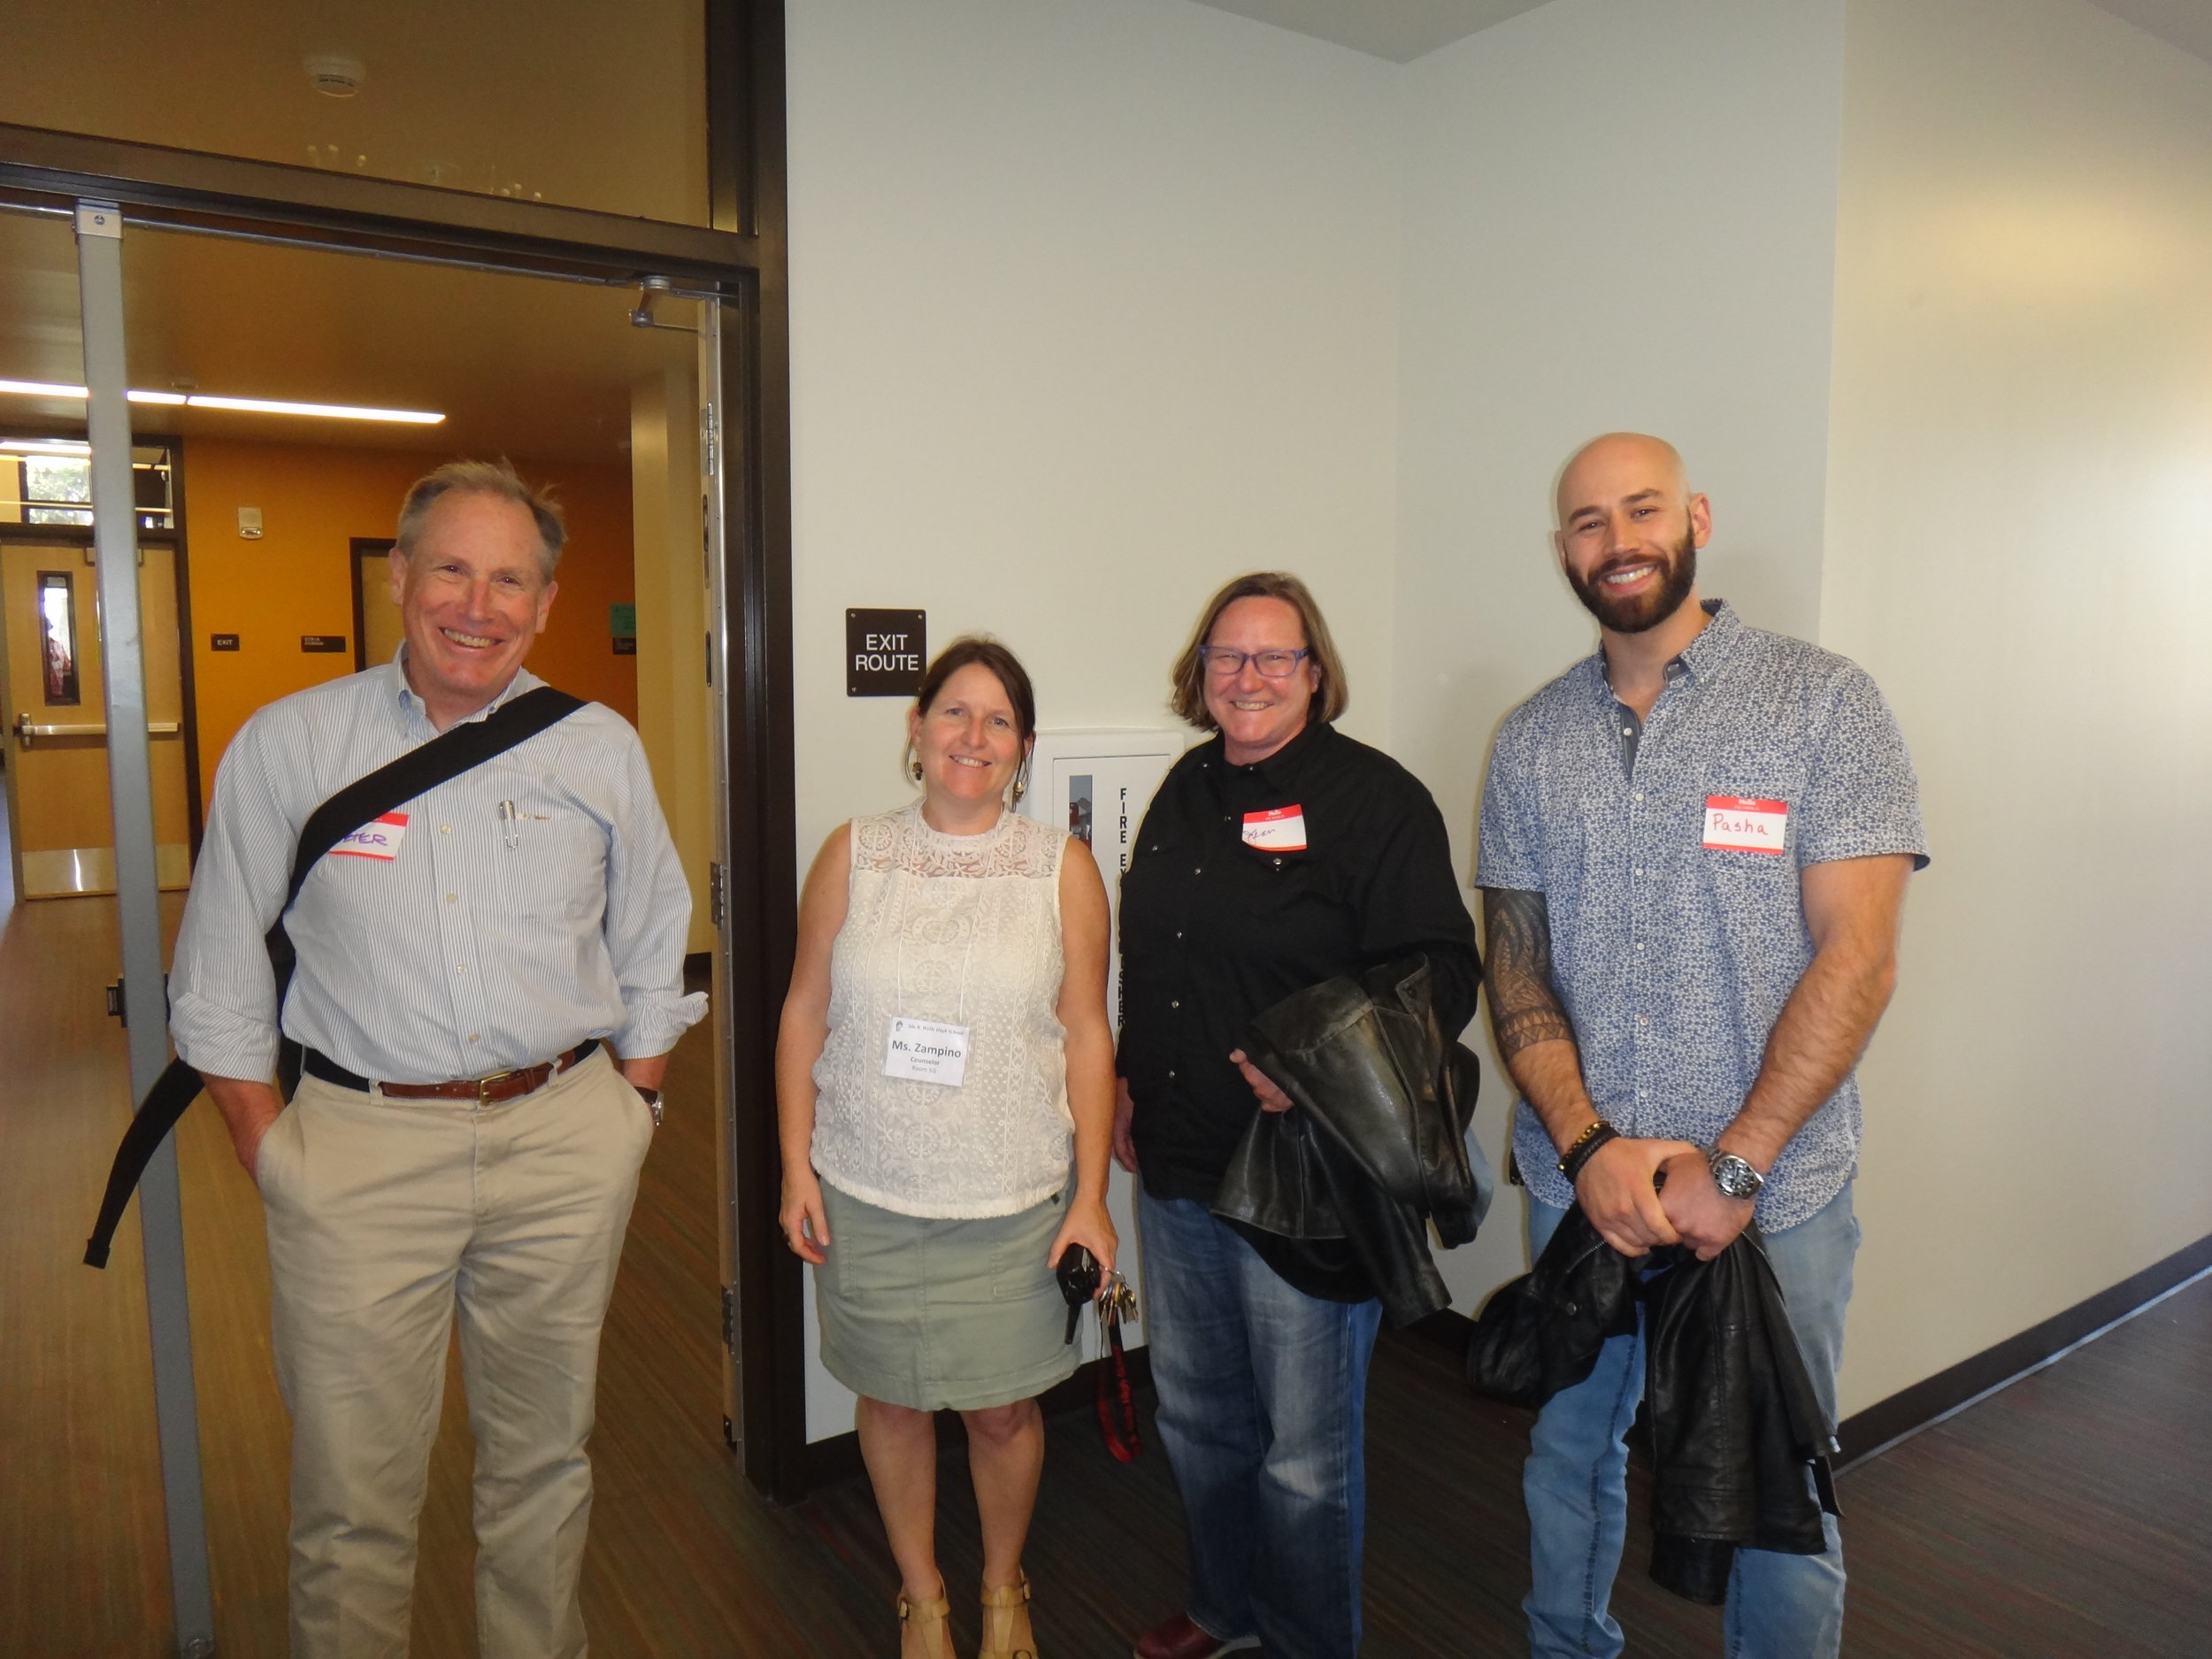 """Now that school is underway, the staff led tours of their newly renovated school to the community. Ms. Zampino was an energetic tour guide for the architects and Pasha Filippov from One Work Place who did a fantastic job outfitting the school with modern furnishings.Ms. Zampino, a counselor at Ida B Wells, told us that upon returning, one of her students felt as if """"she was on a movie set!"""""""